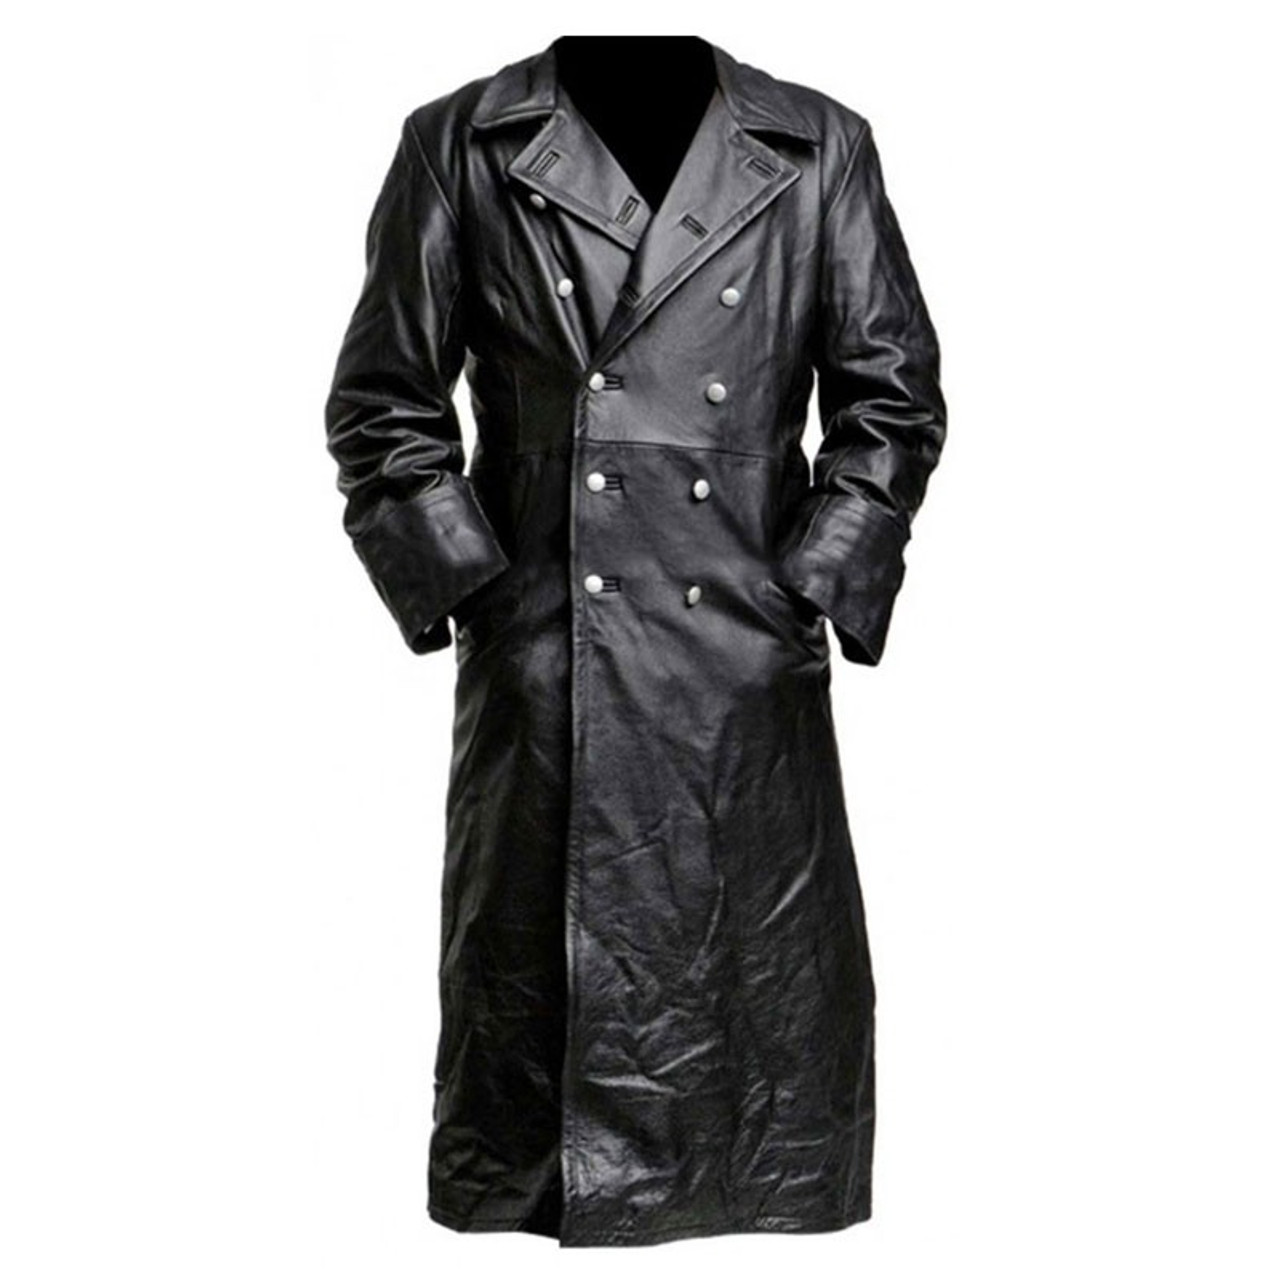 Nazi Leather Trench Coat